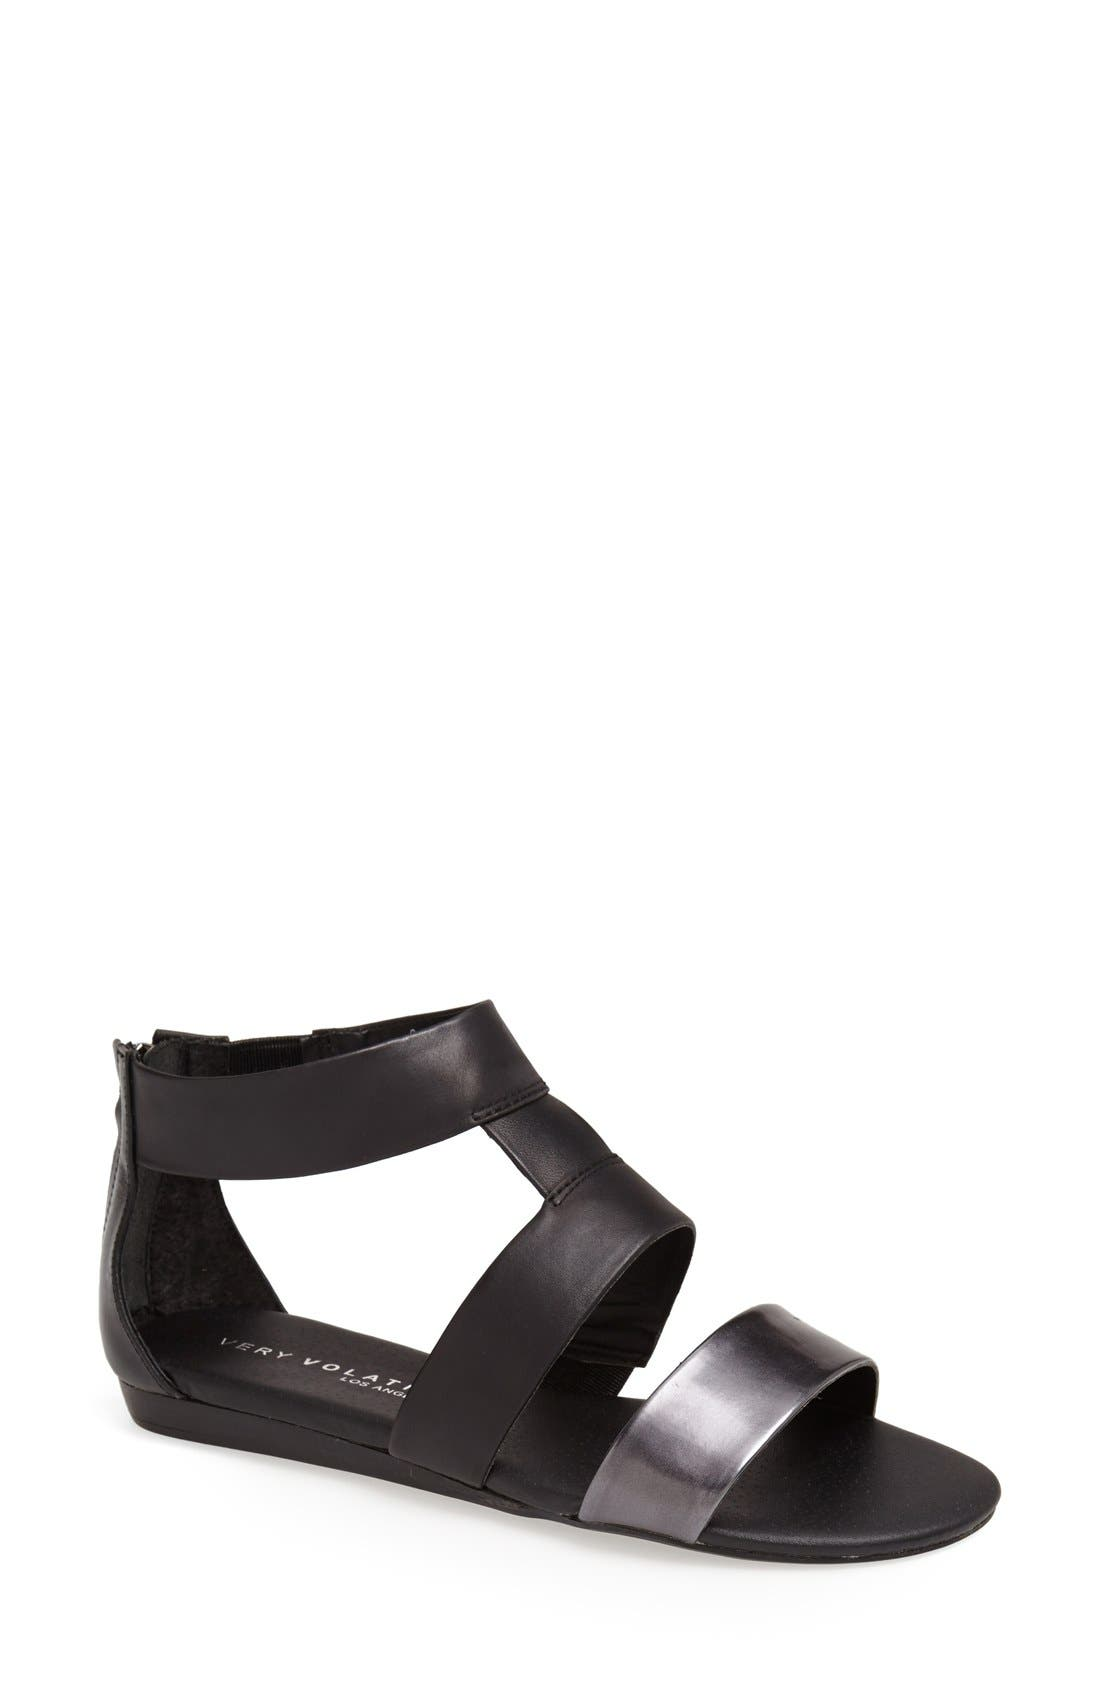 'Collective' Leather Sandal, Main, color, 001